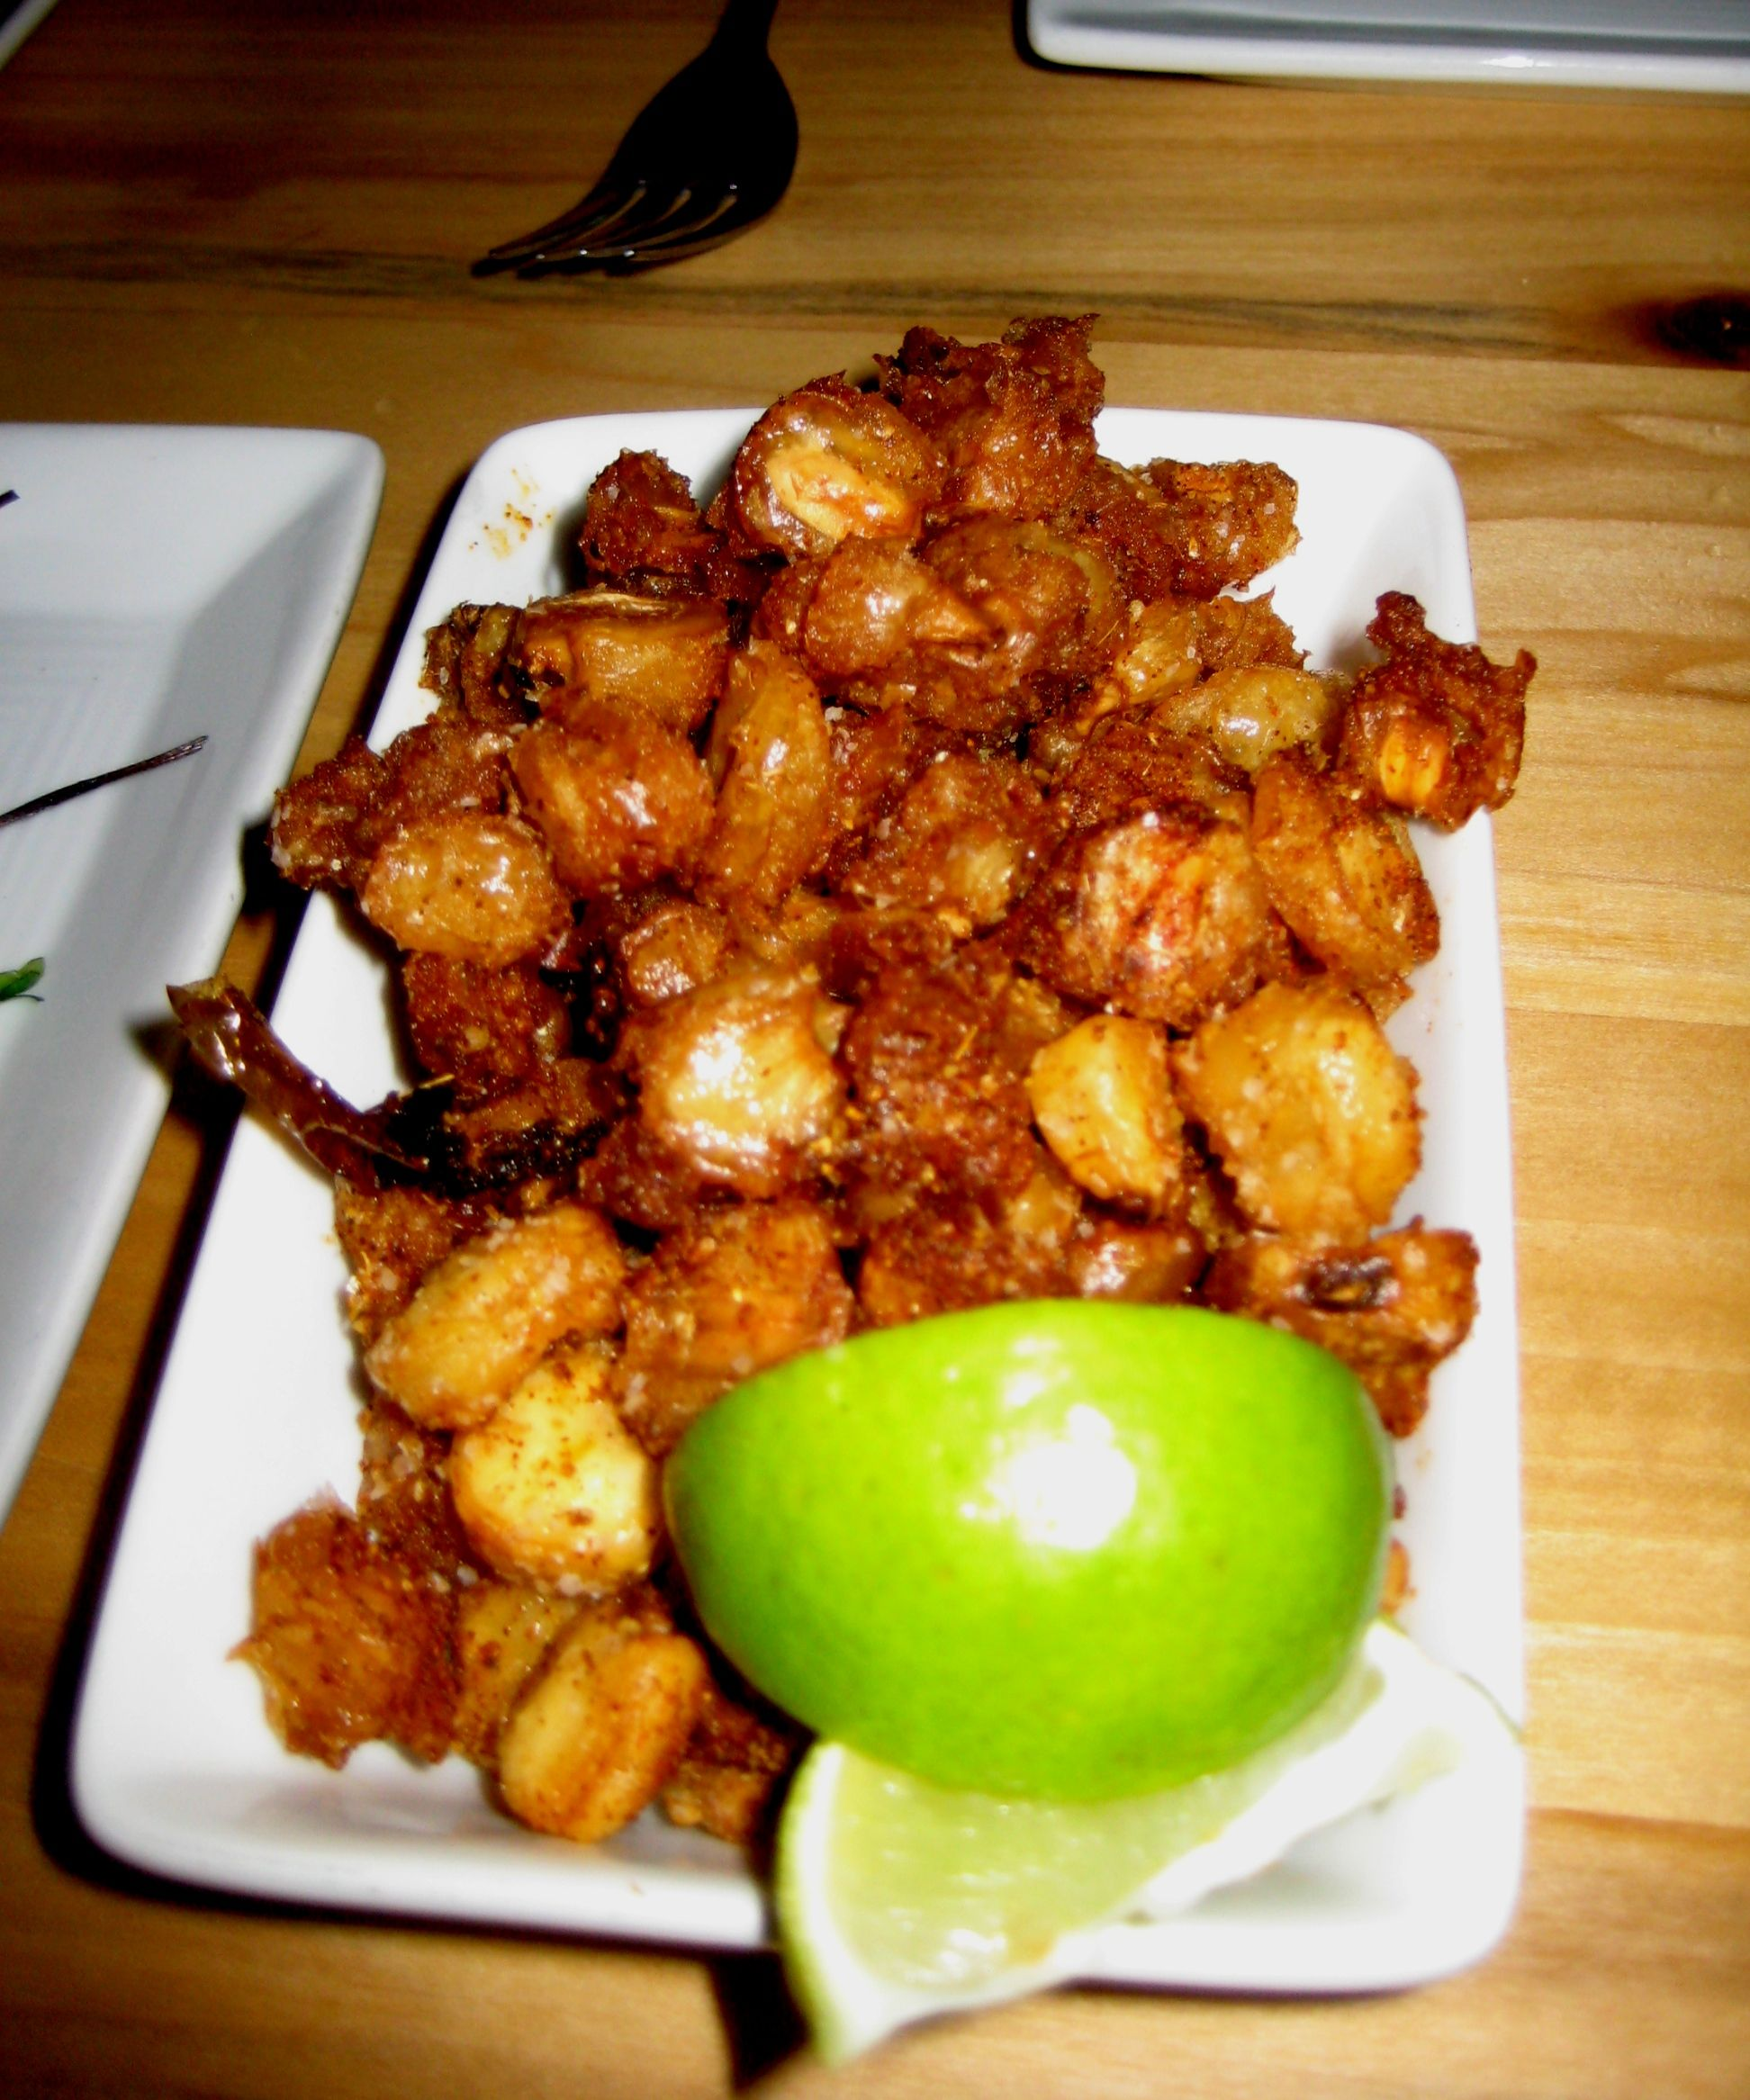 Fried hominy native american recipe native american fried hominy native american recipe forumfinder Image collections